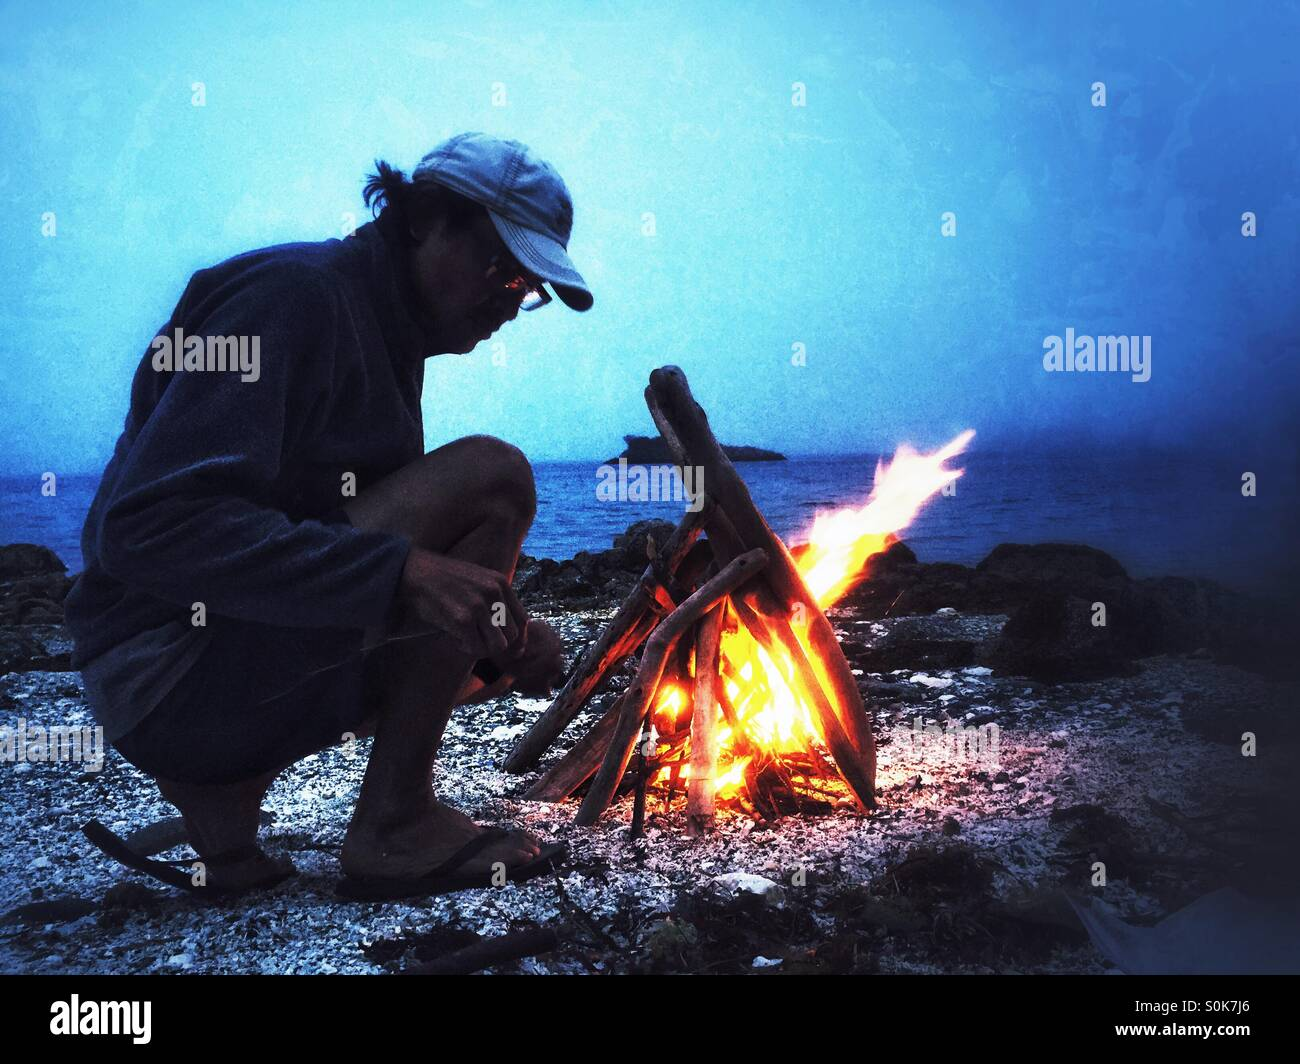 Man building a campfire at twilight on a beach - Stock Image